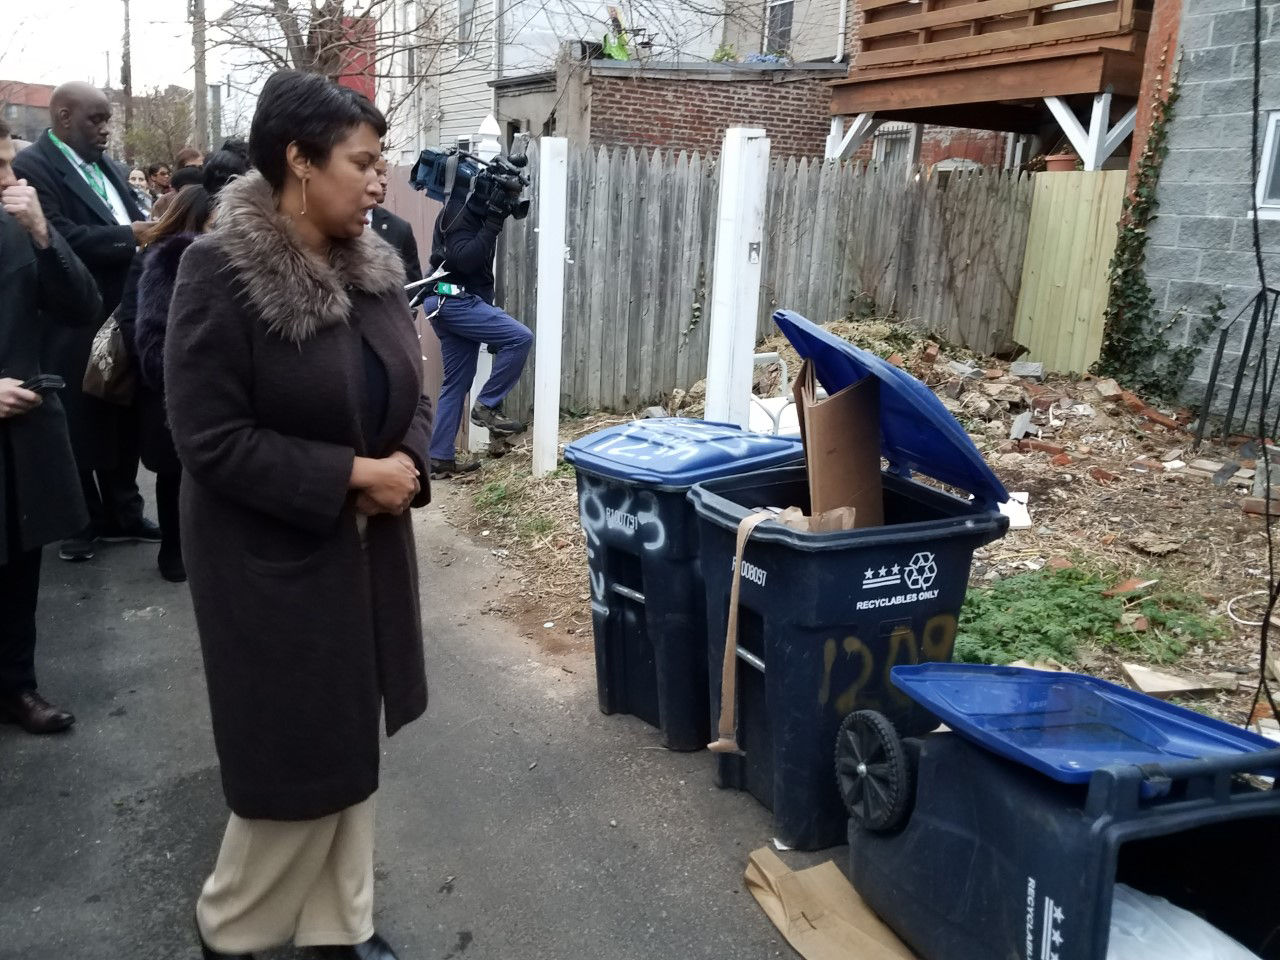 D.C. Mayor Muriel Bowser looks at some of trash that is improperly stored in the District. Improperly stored trash is one of the biggest contributor's to D.C.'s rat problem. (Courtesy Larry Janezich)